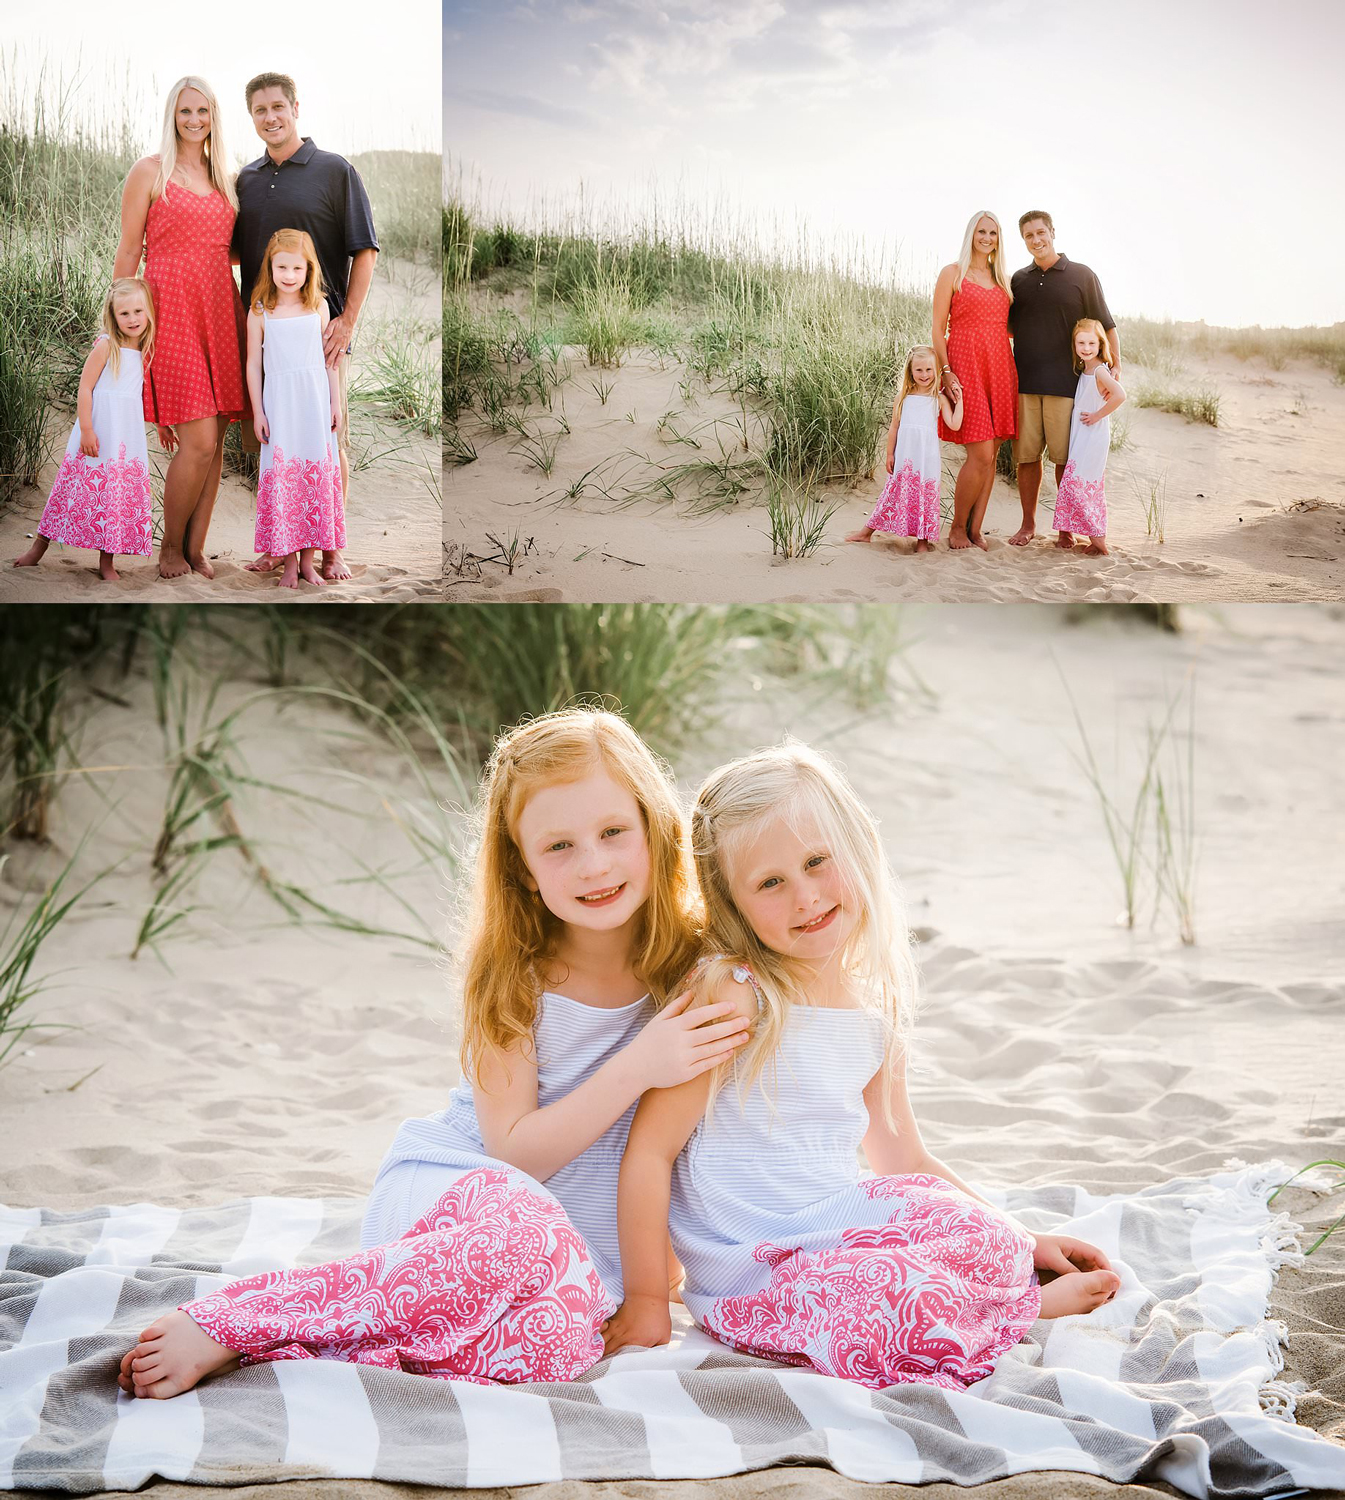 virginia-beach-family-pictures-by-the-dunes-melissa-bliss-photography.jpg